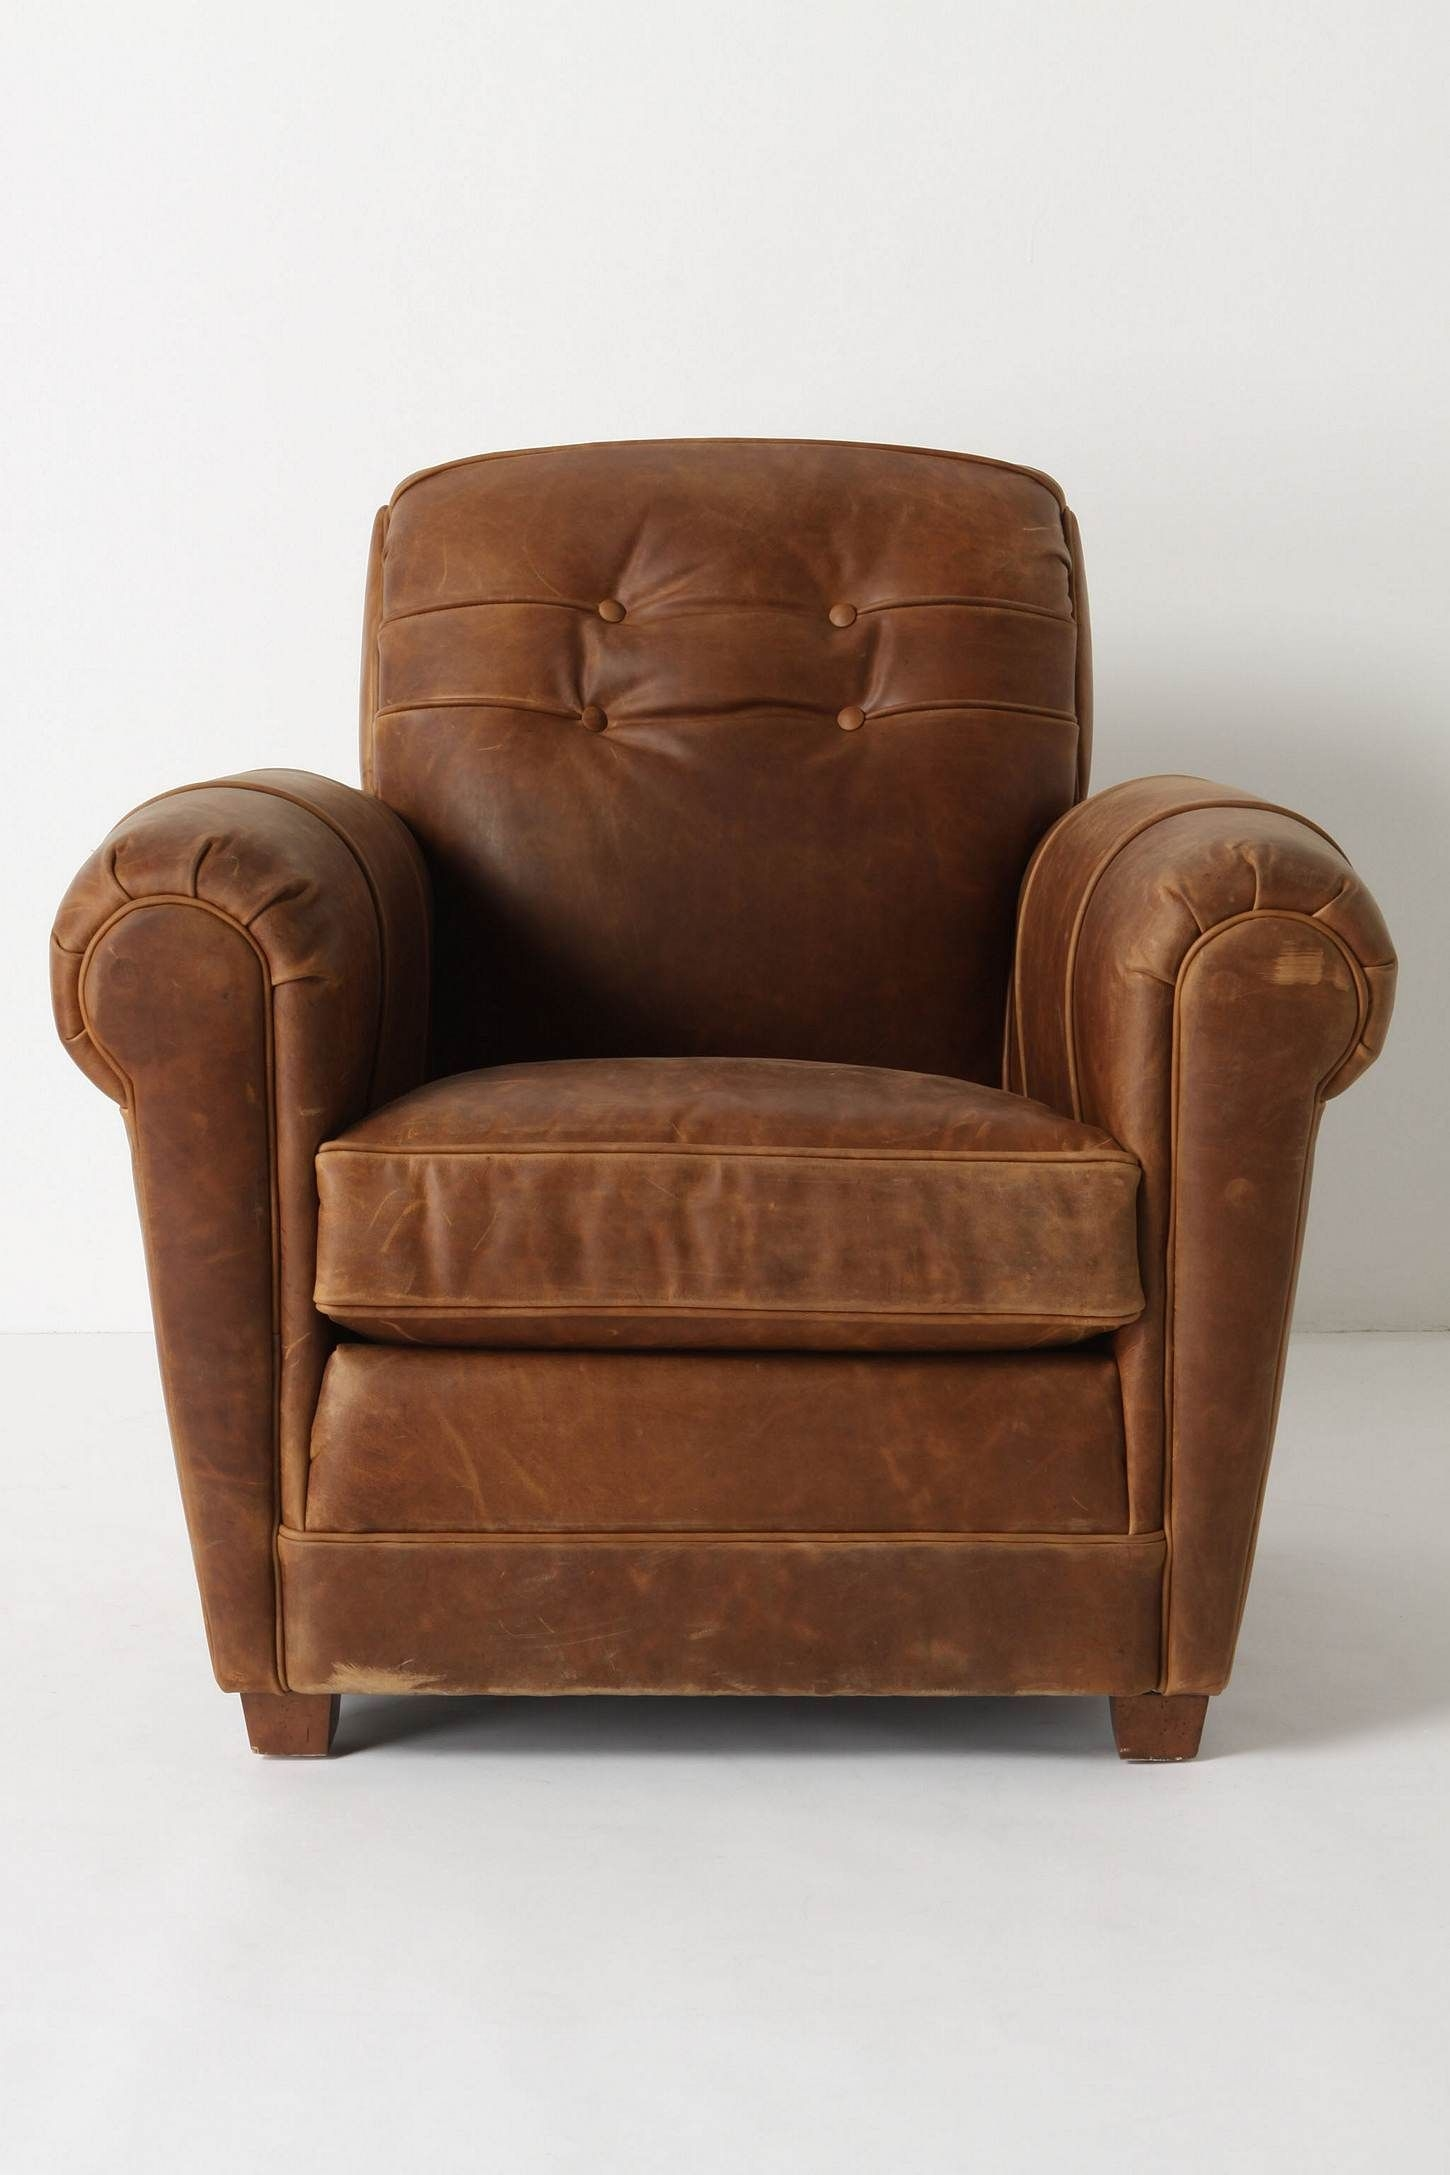 Small Leather Recliners Chairs